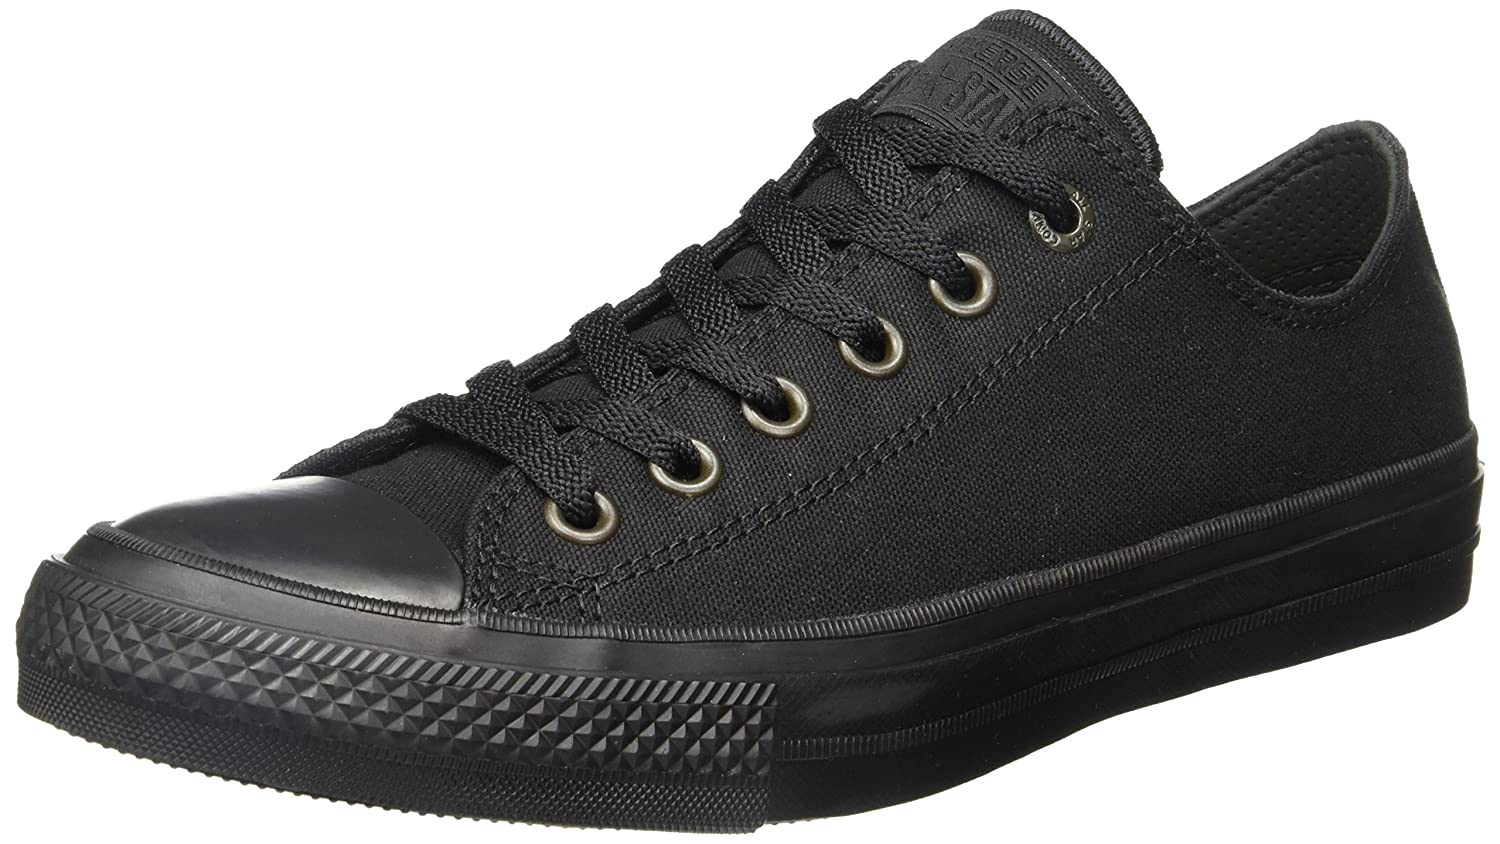 Converse Chuck Taylor All Star Ii Zapatillas Unisex Adulto